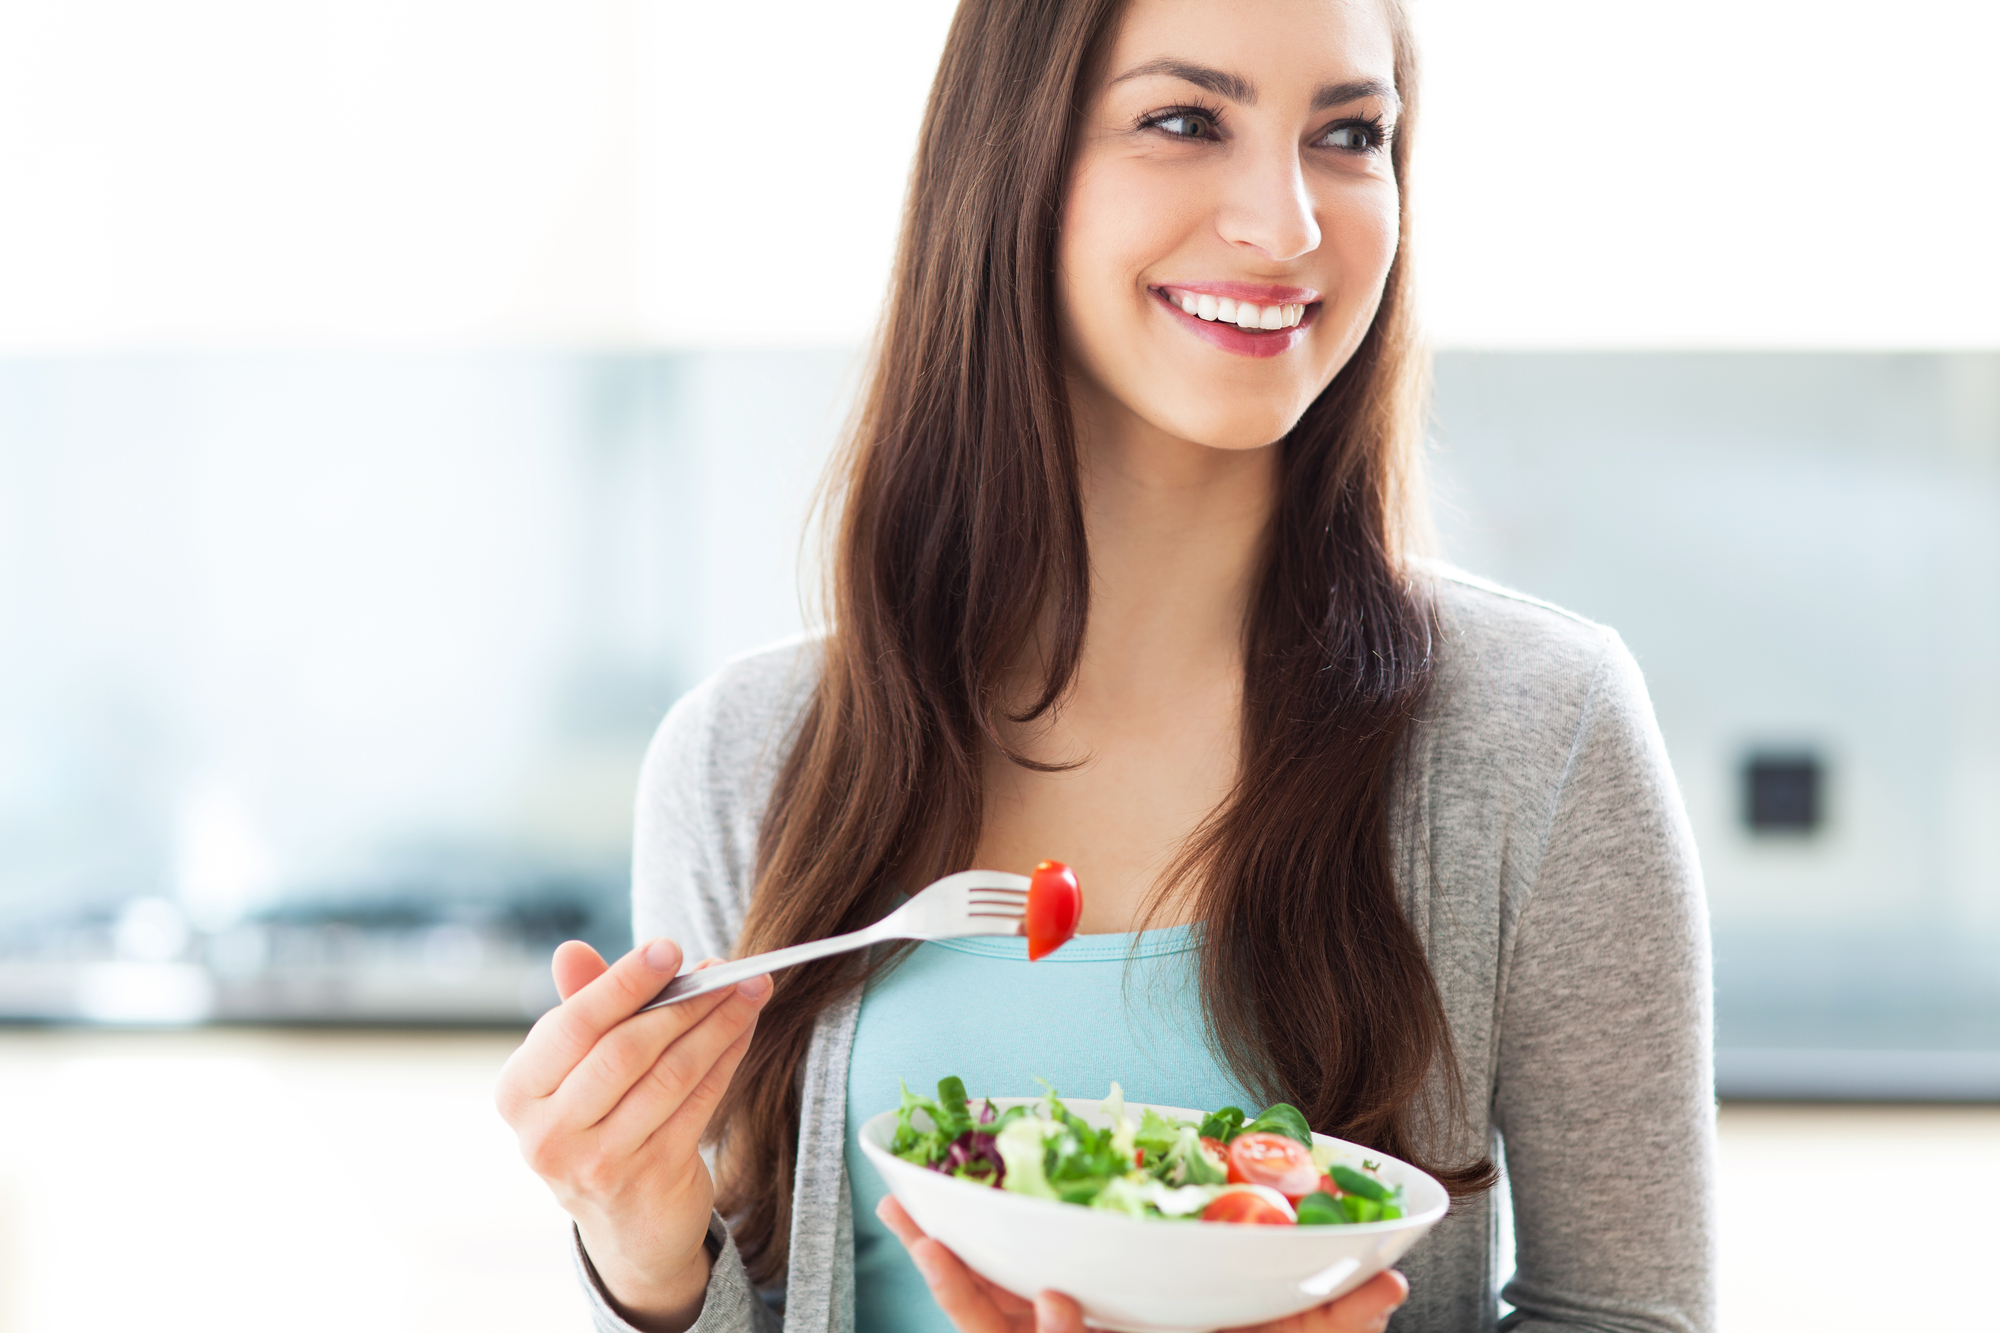 A woman looking happy and not stressed out while eating a healthy snack.